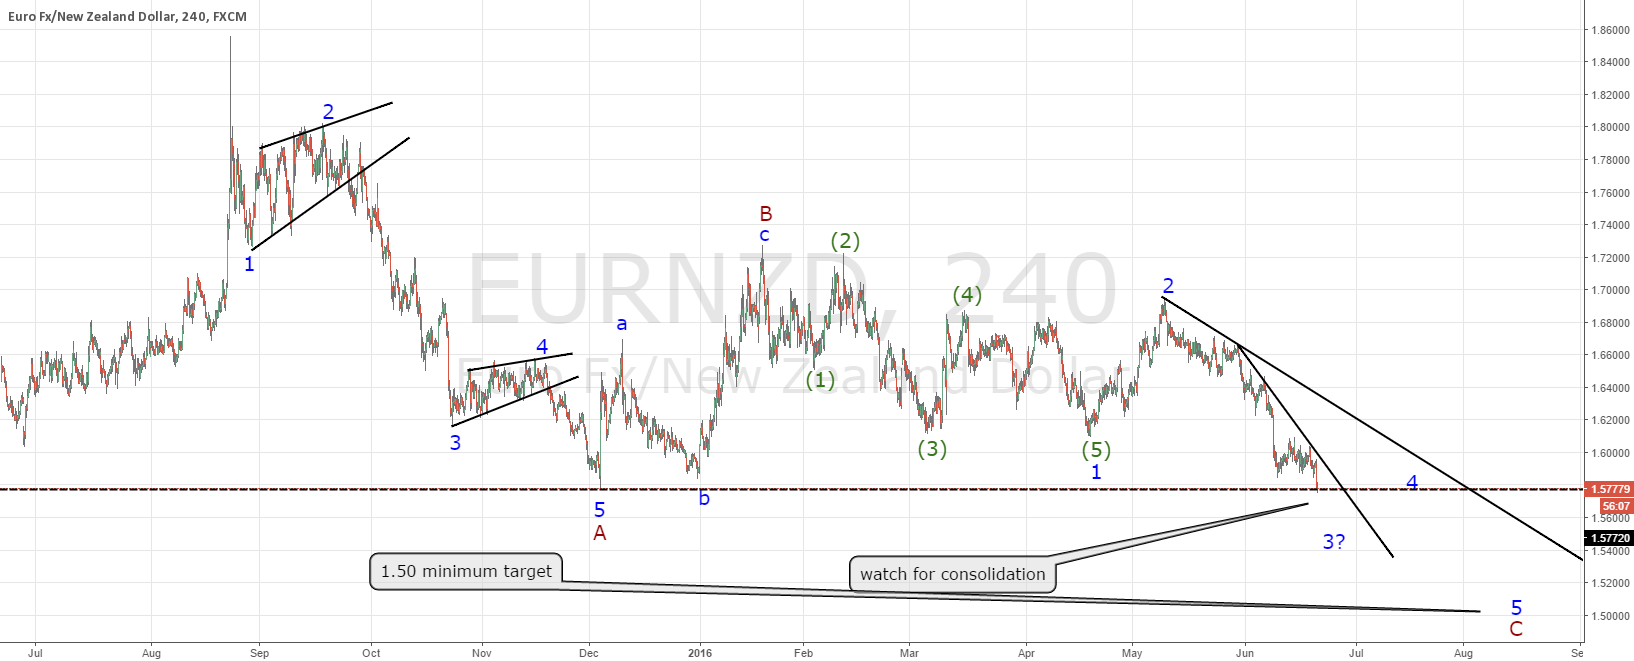 EURNZD finishing a daily consolidation, then buy!